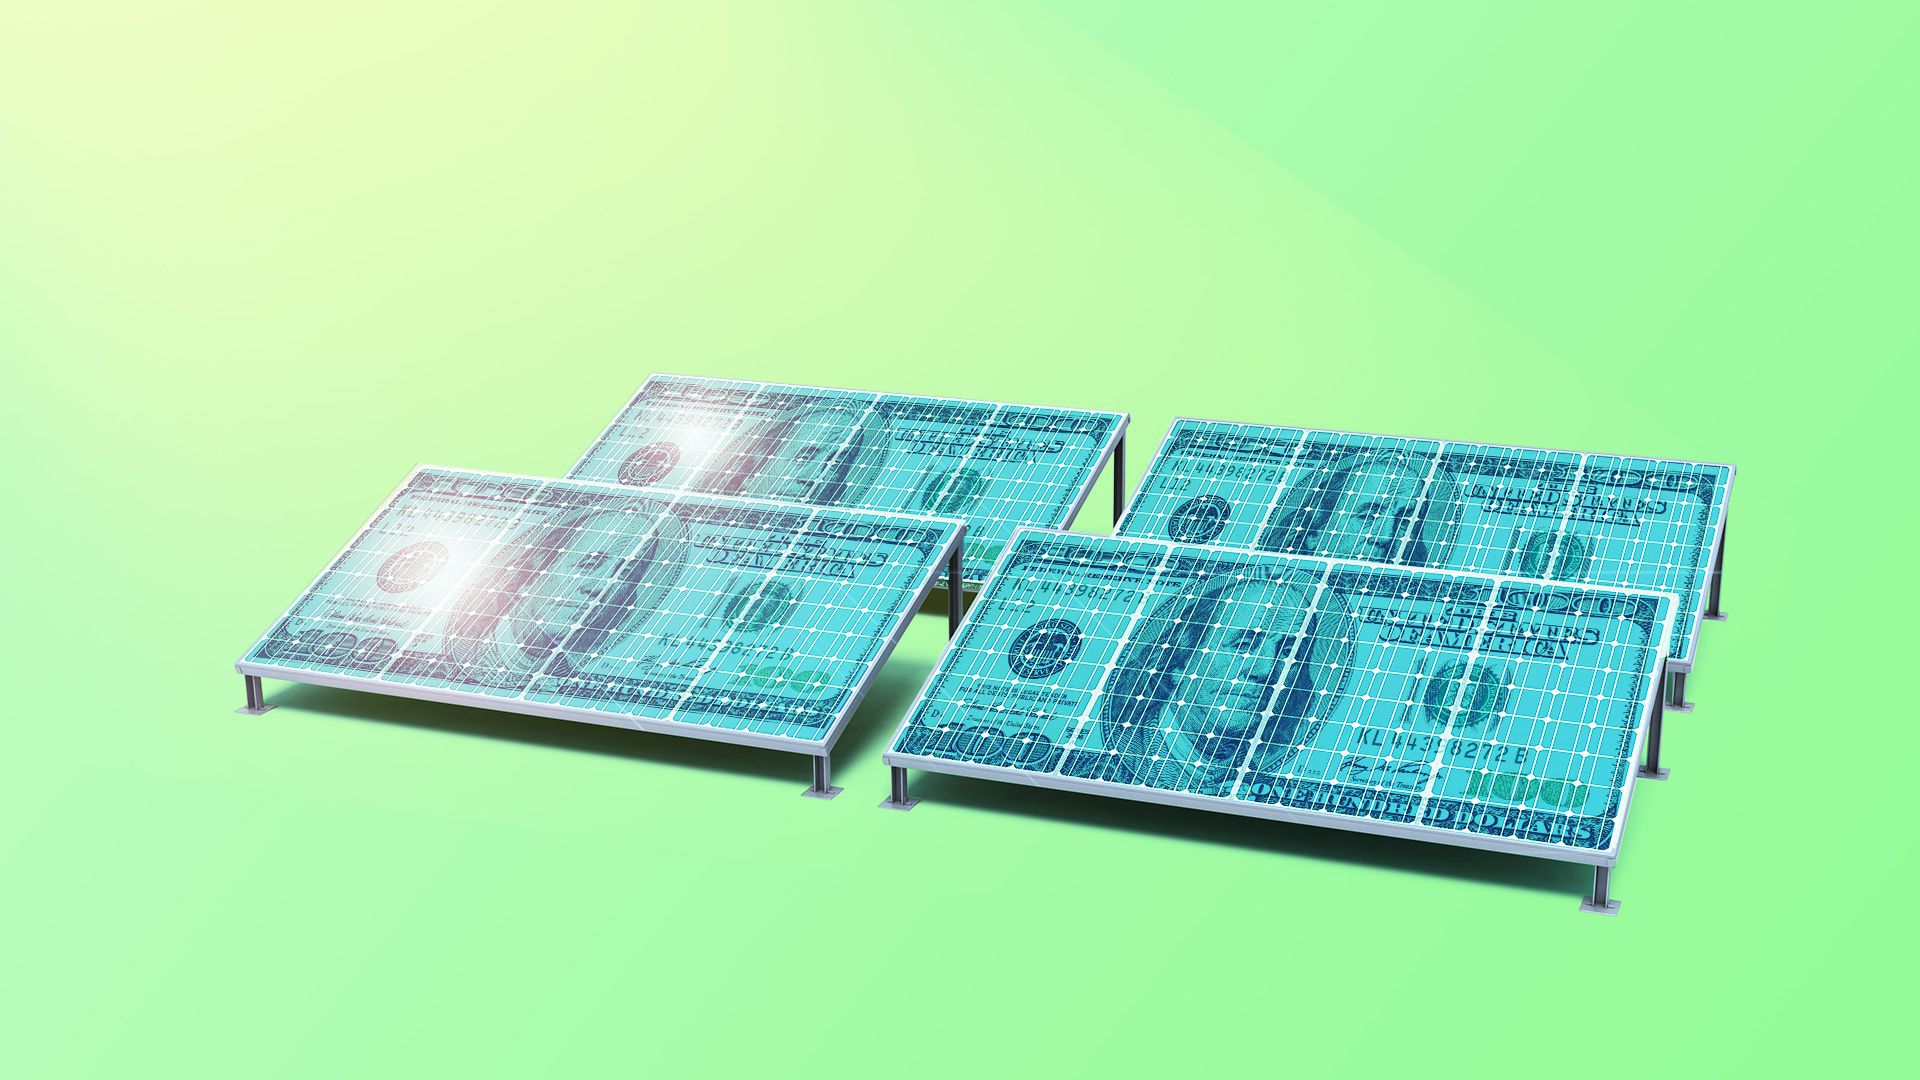 Illustration of hundred dollar bills as solar panels.